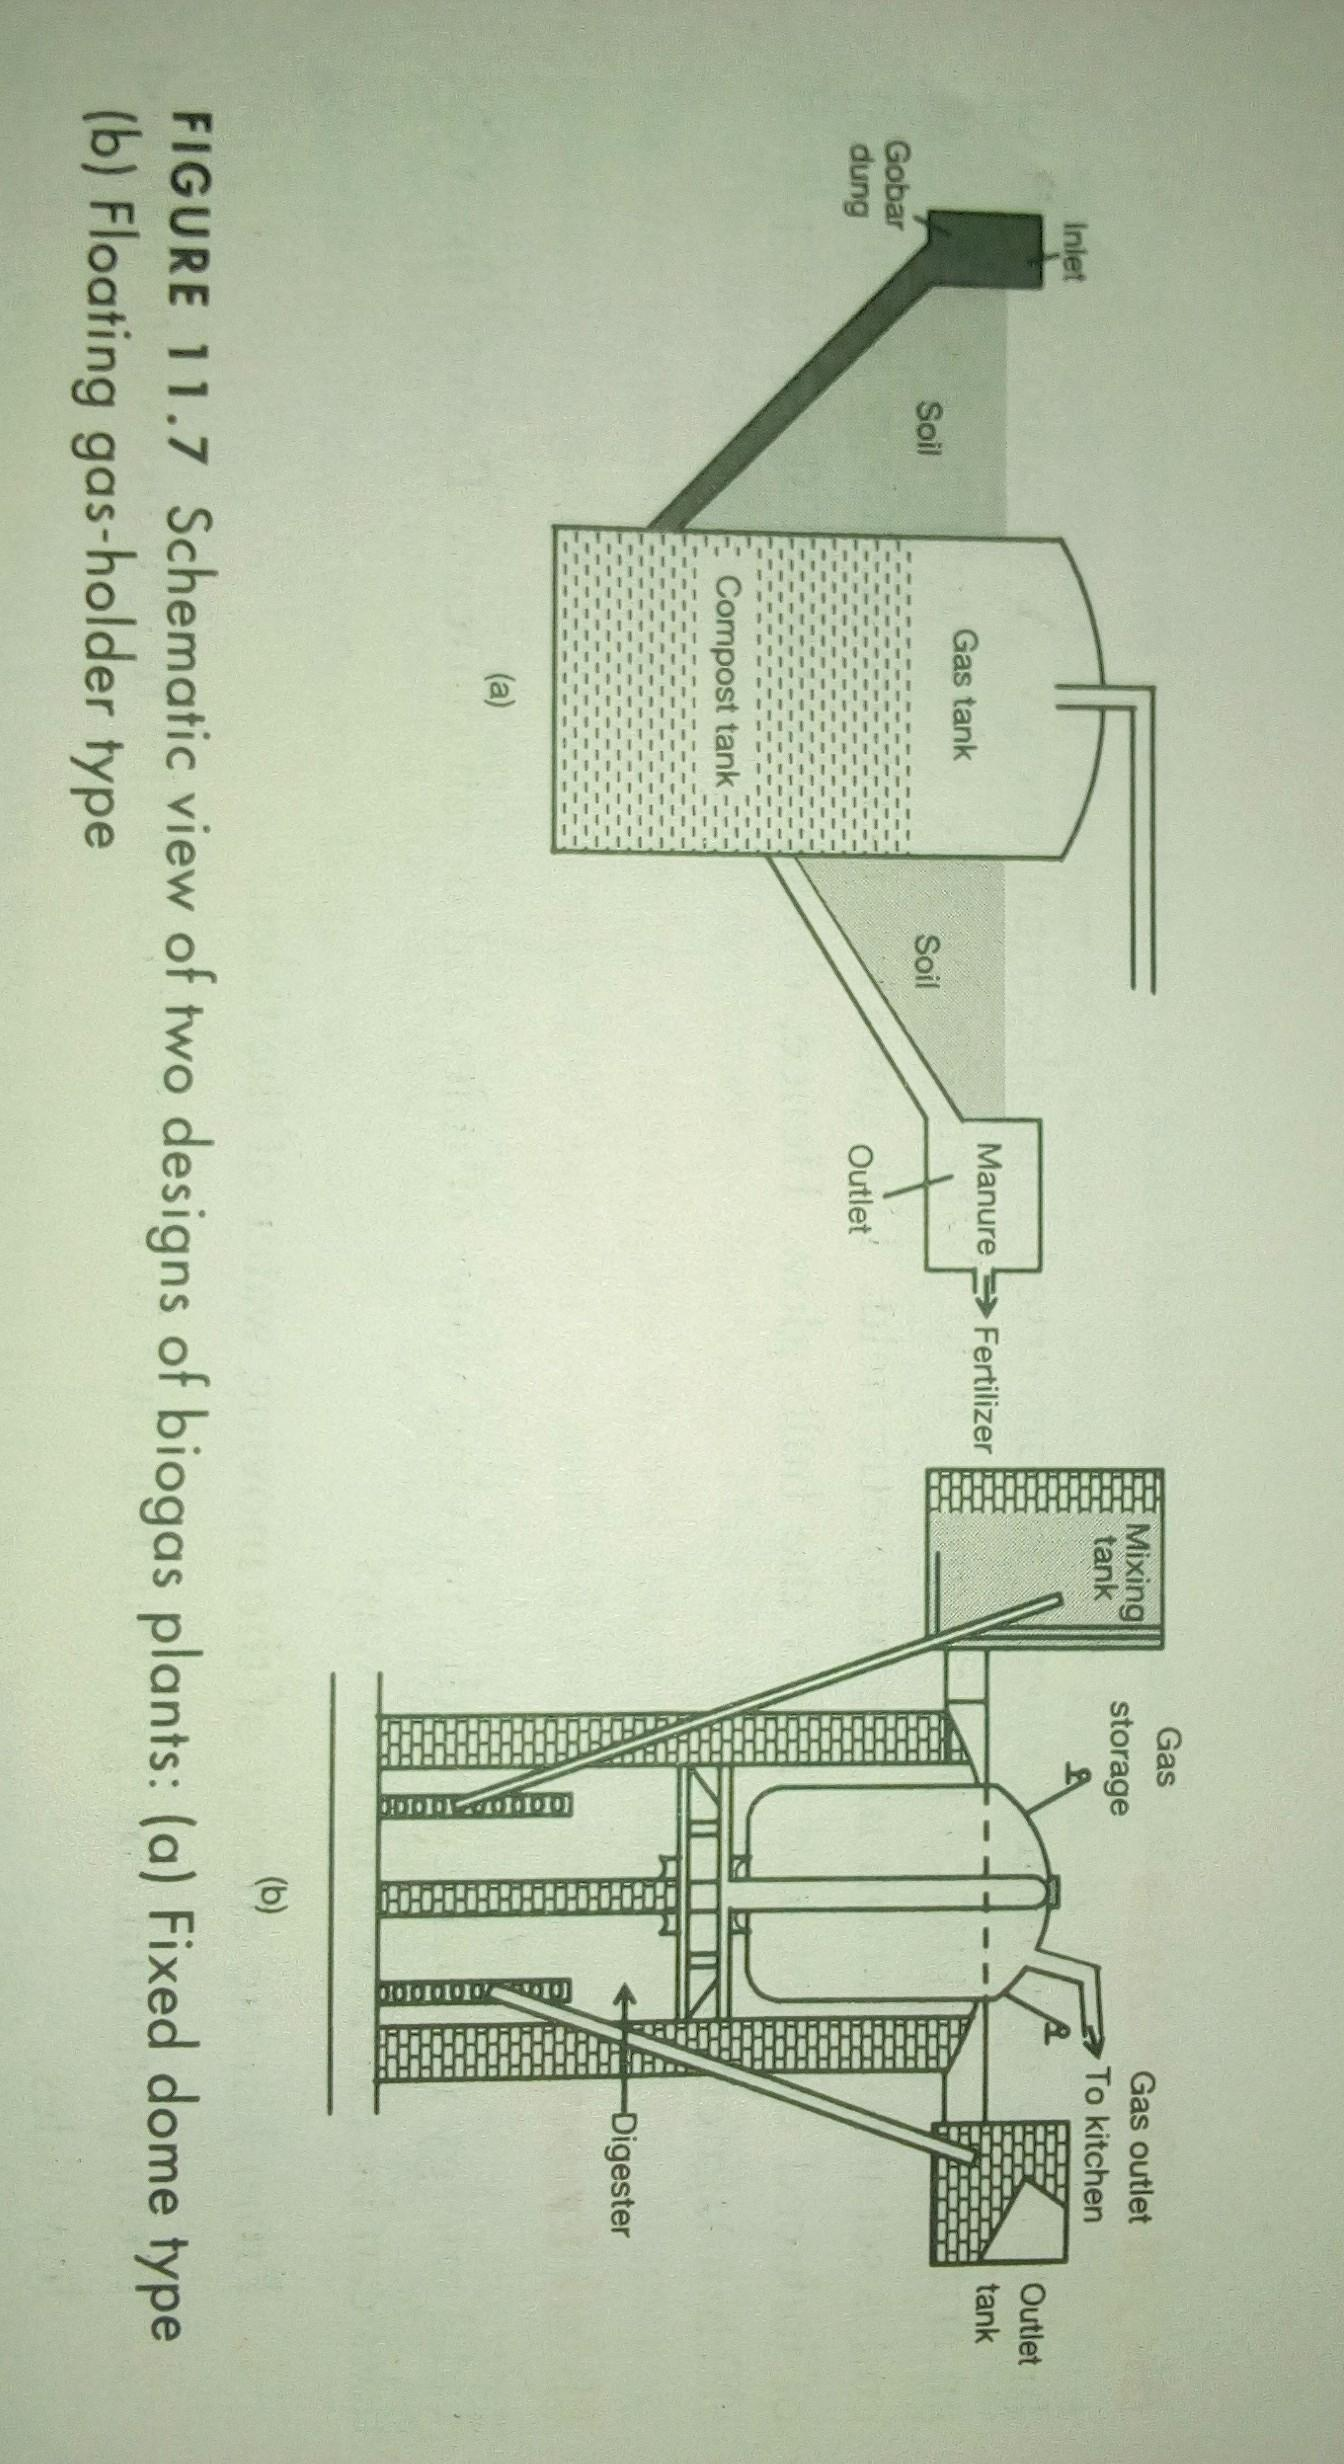 Make a model of a biogas plant and make a presentation in